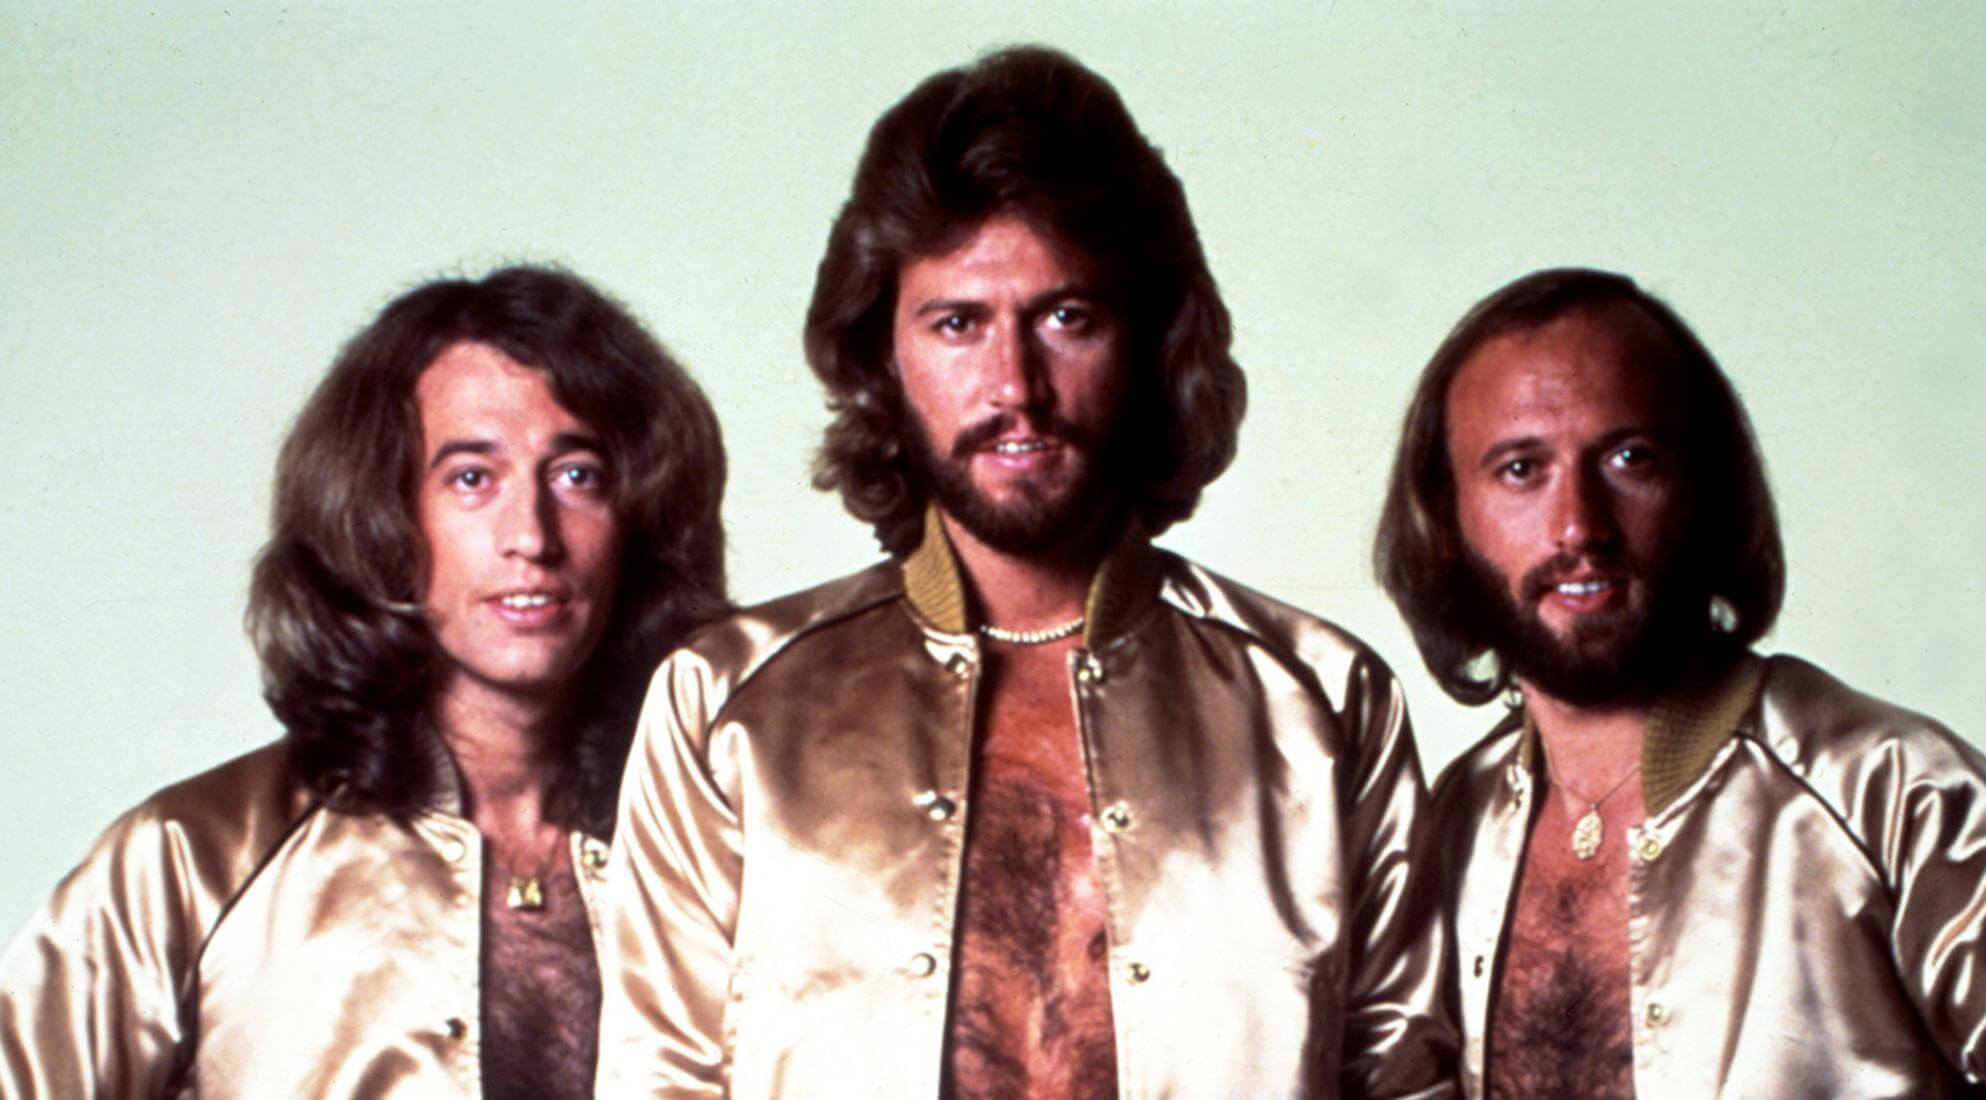 Bee Gees (Photo: Grammy.com)